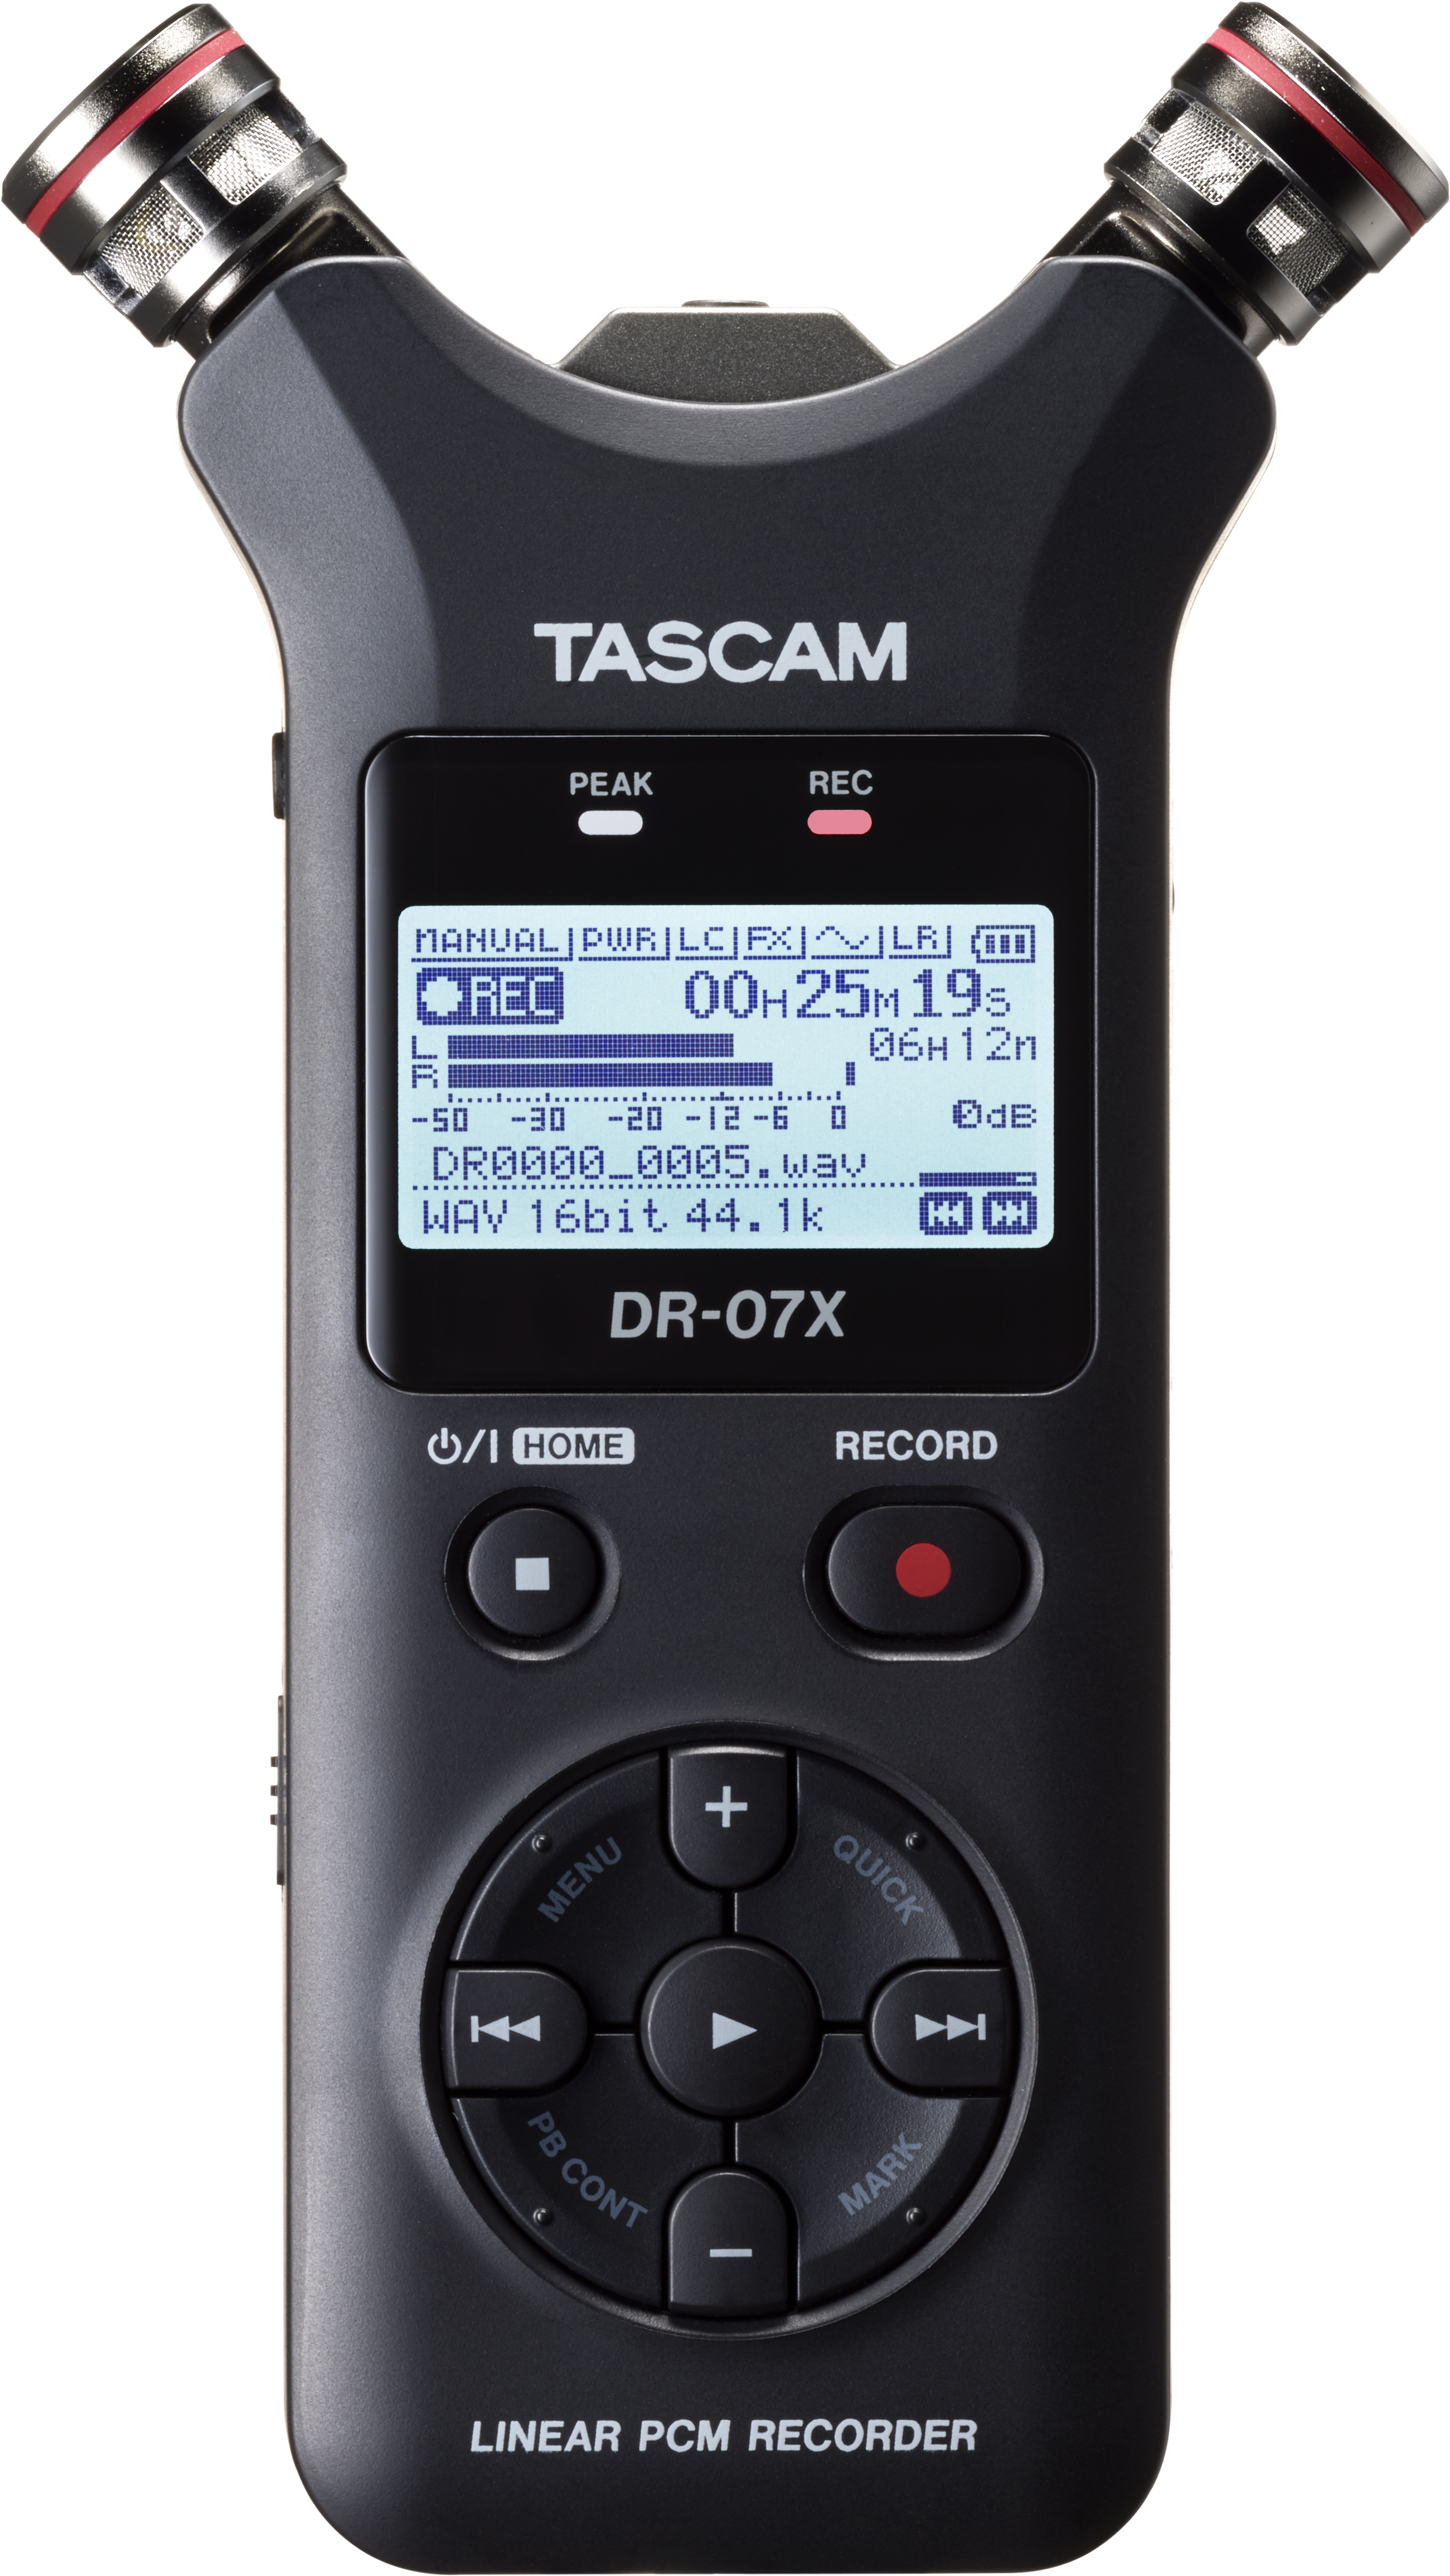 tascam introduces next generation dr x series digital audio recorder and usb audio interface. Black Bedroom Furniture Sets. Home Design Ideas